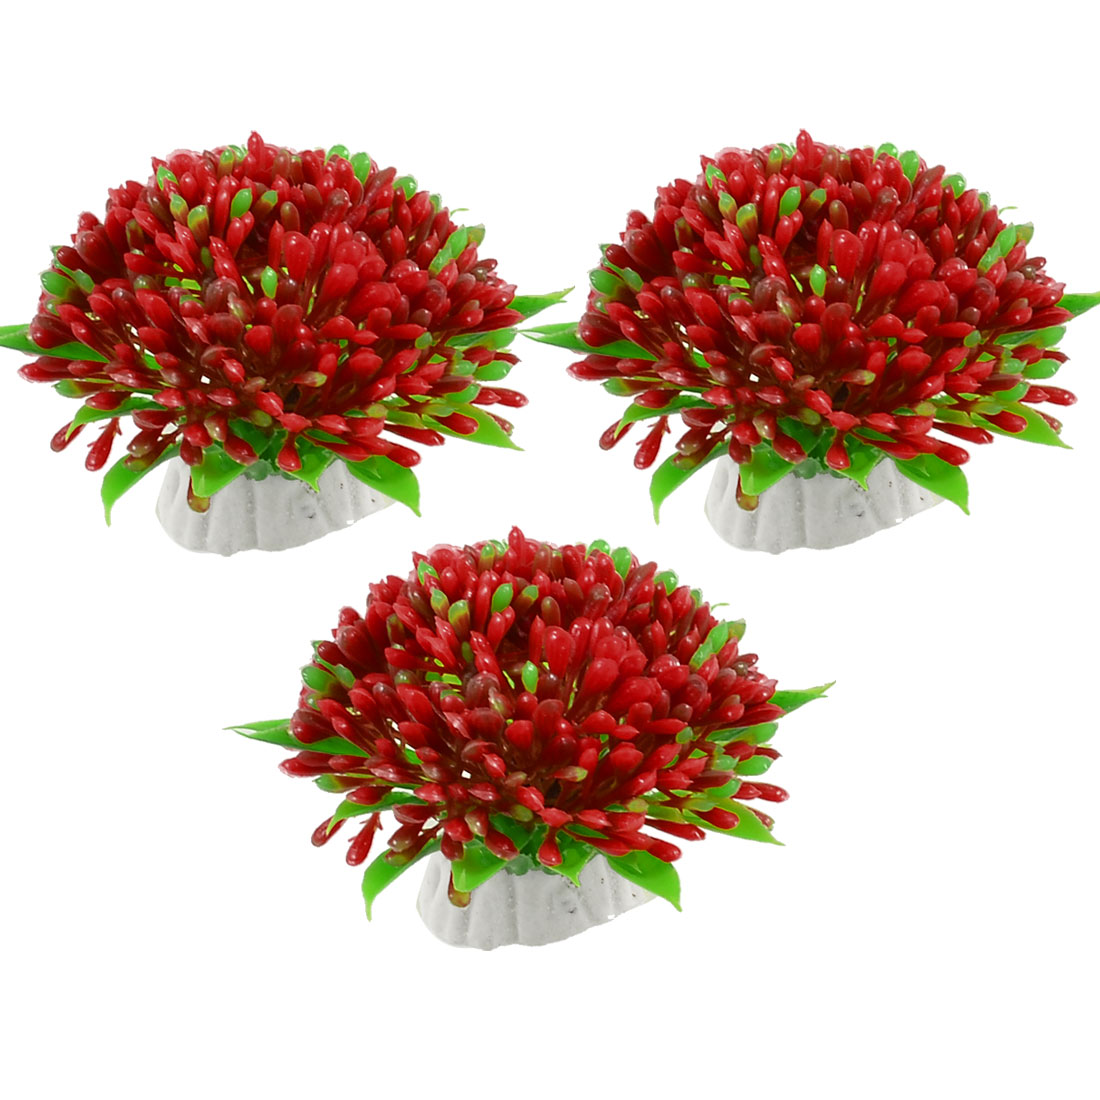 3 Pcs Green Red Lifelike Aquarium Plastic Plant Flower Ornament Decoration